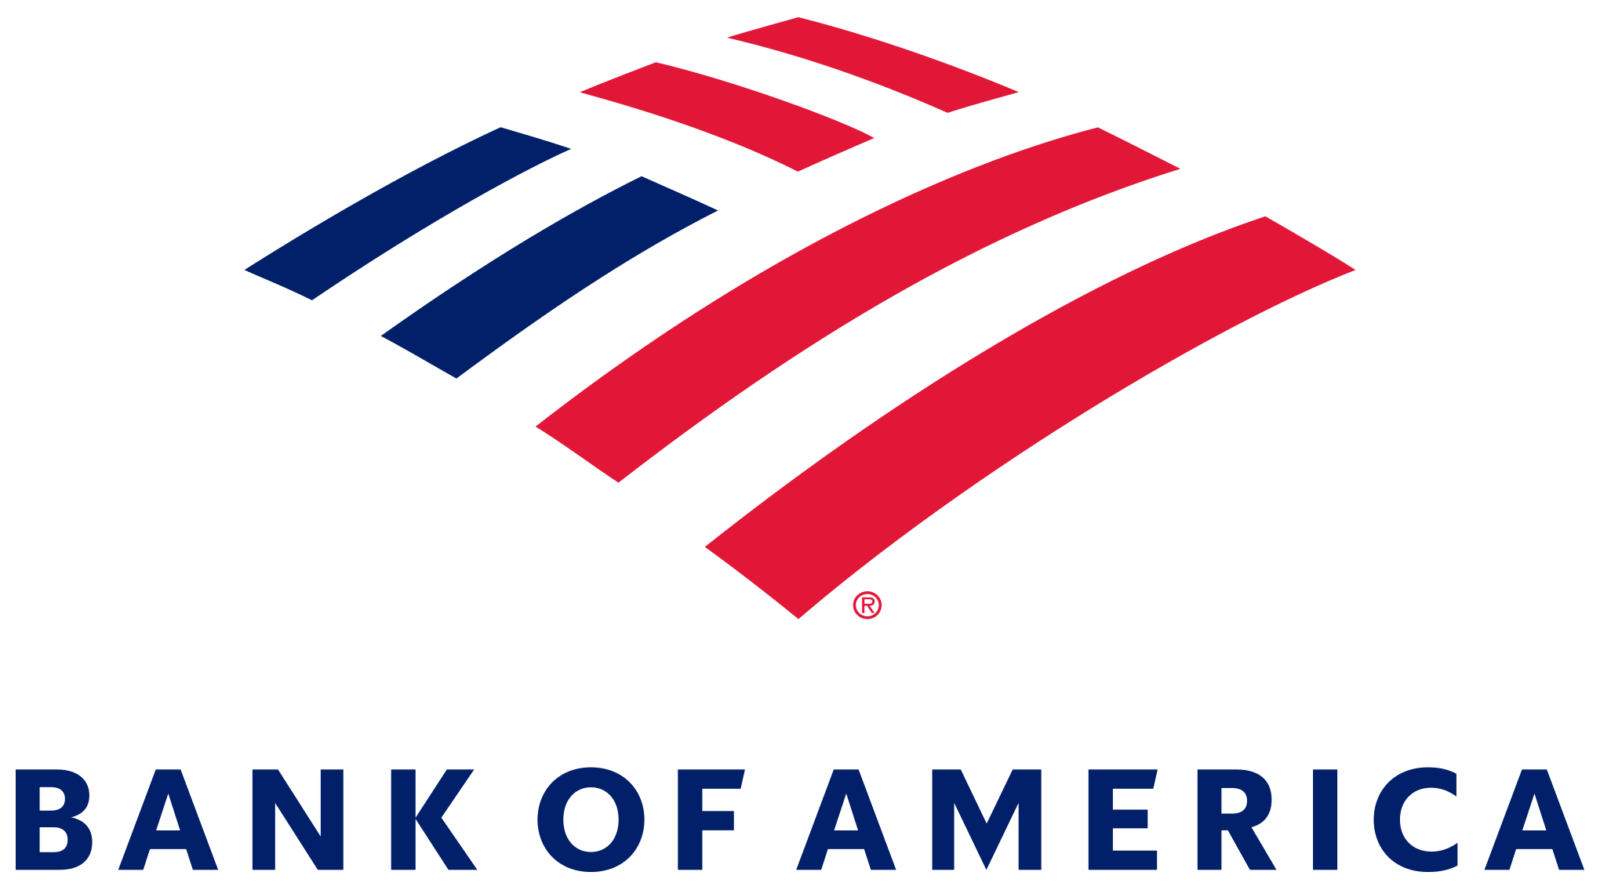 https://powerwashed.com/wp-content/uploads/2019/04/bank-of-america-logo.png